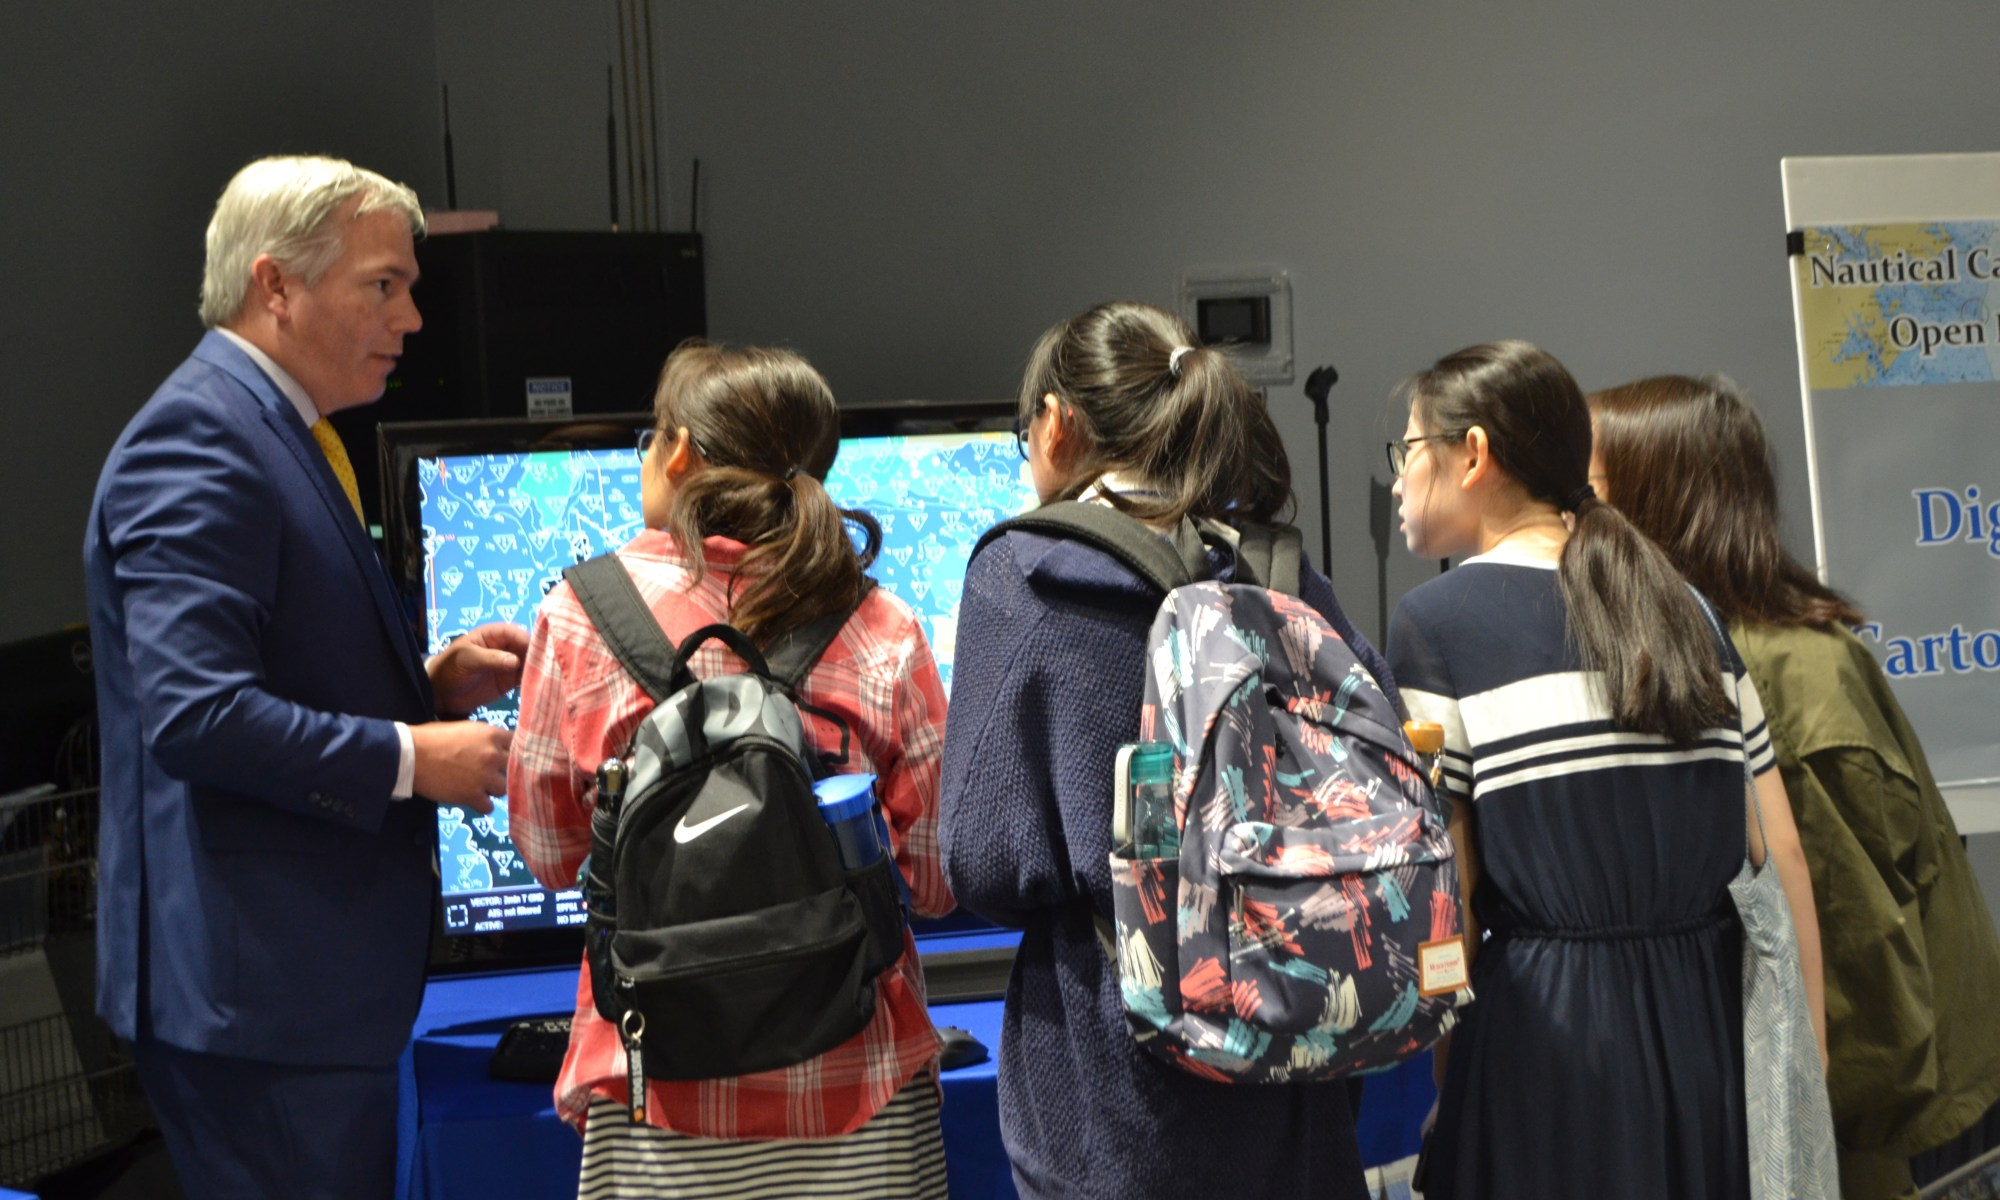 Sean Legeer shows a digital cartography display to visiting students.